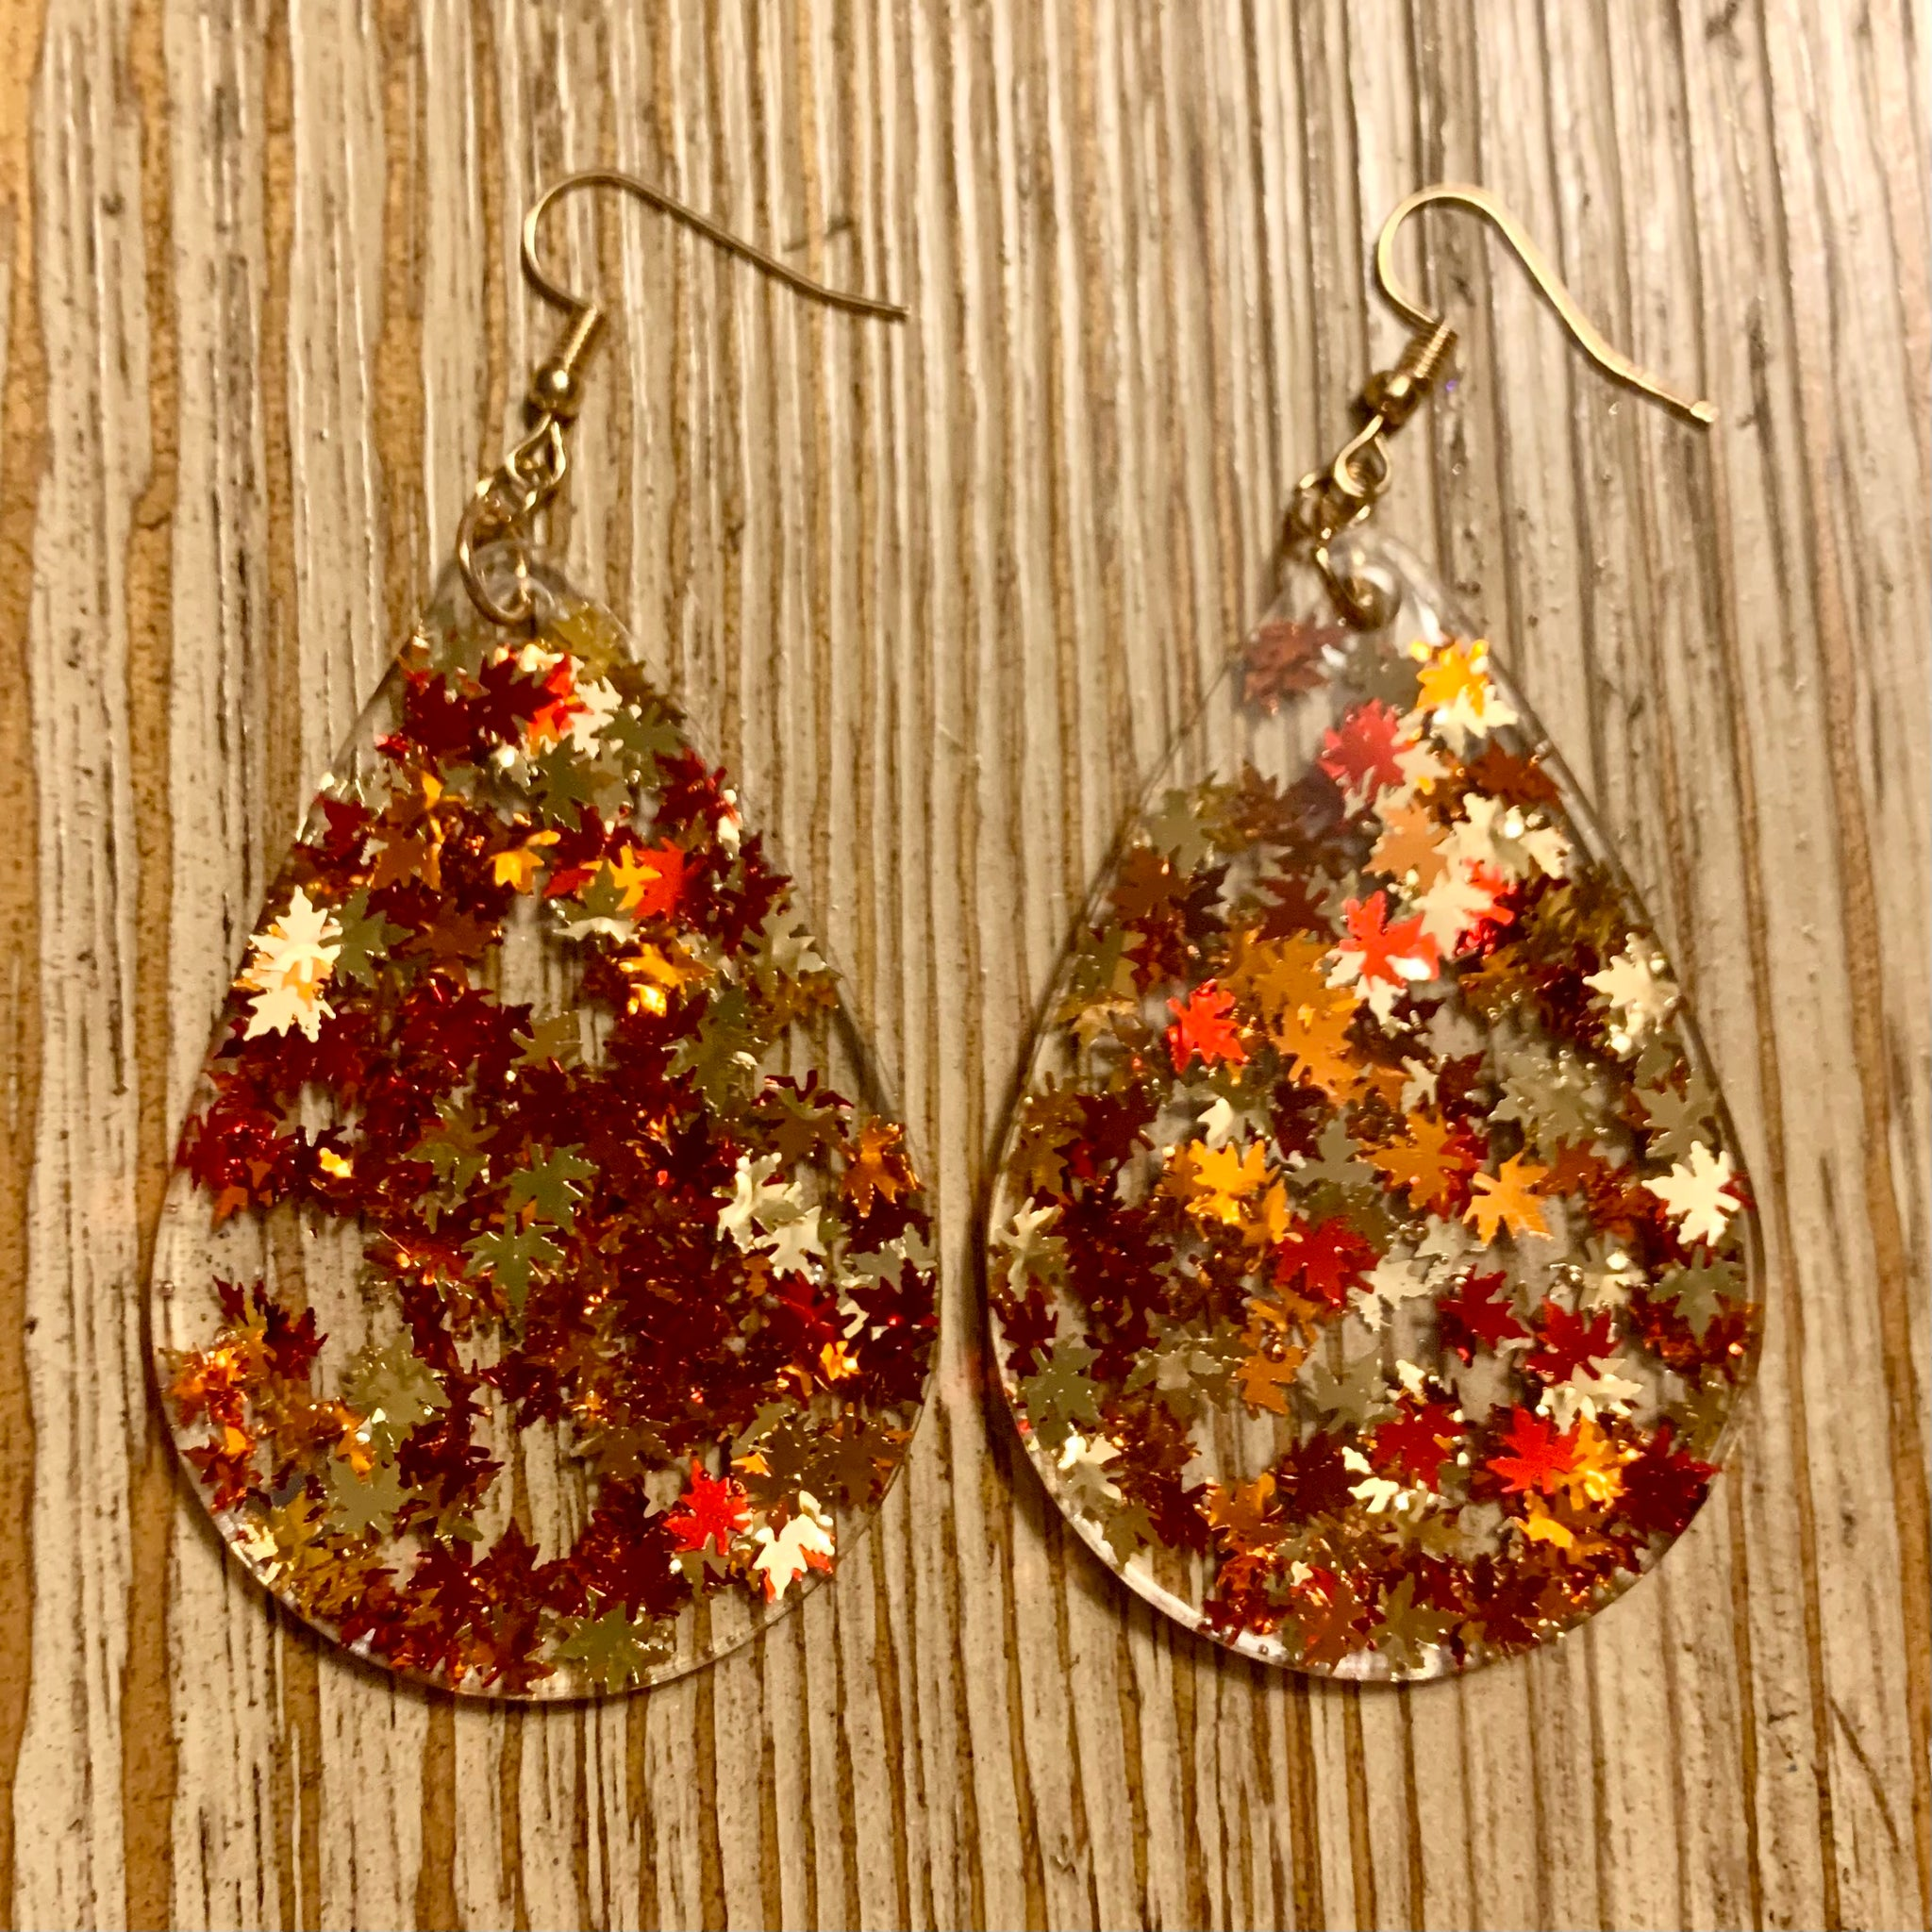 Fall Leaves Earrings - Large